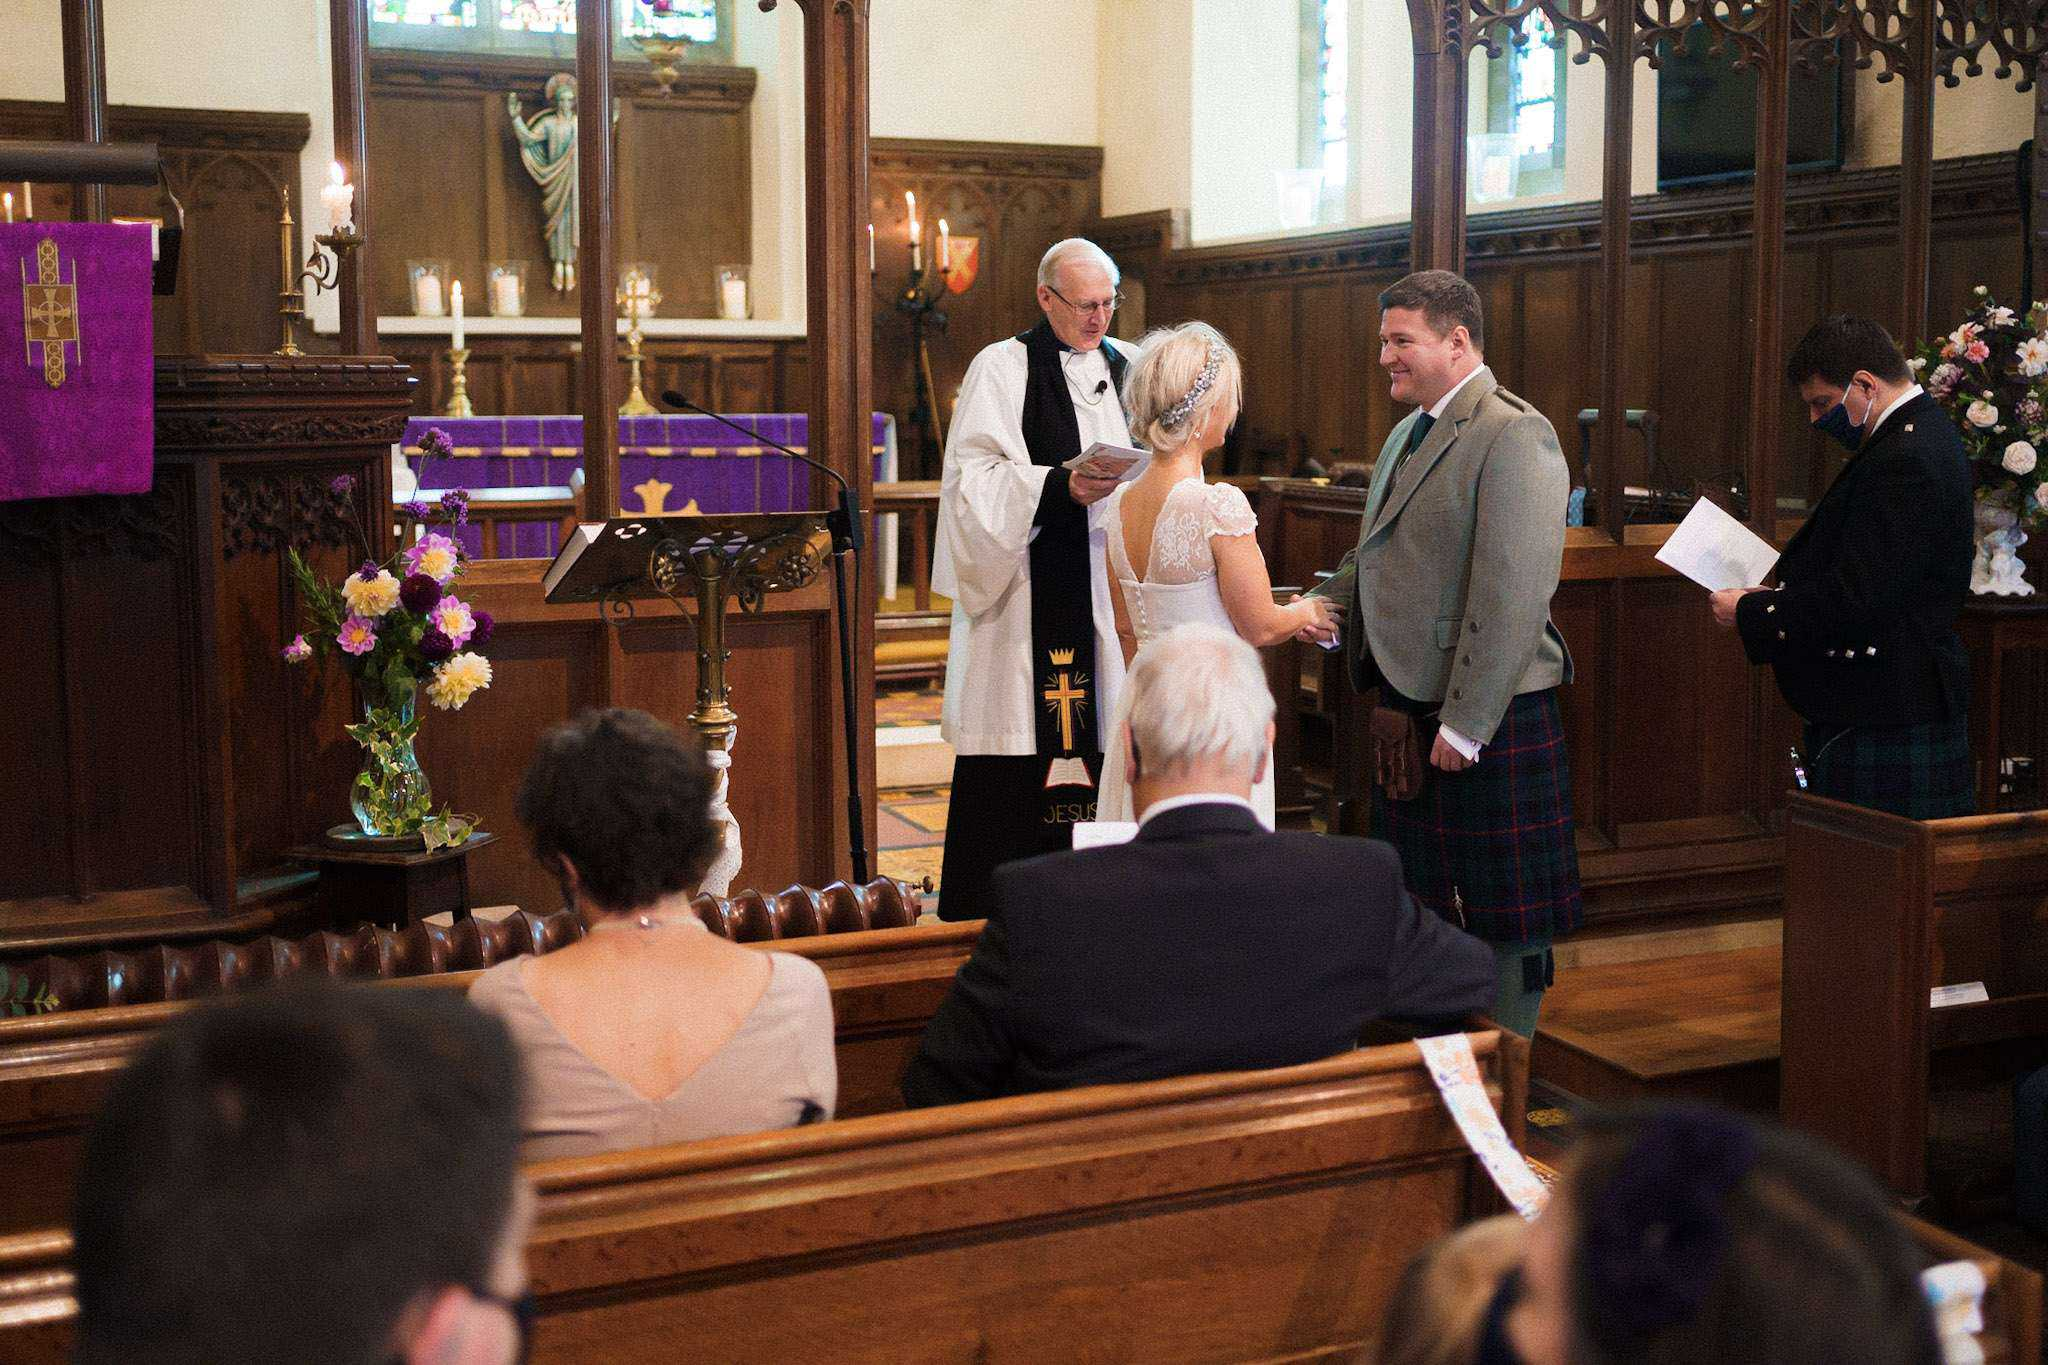 A bride and groom share their vows with each other during the ceremony